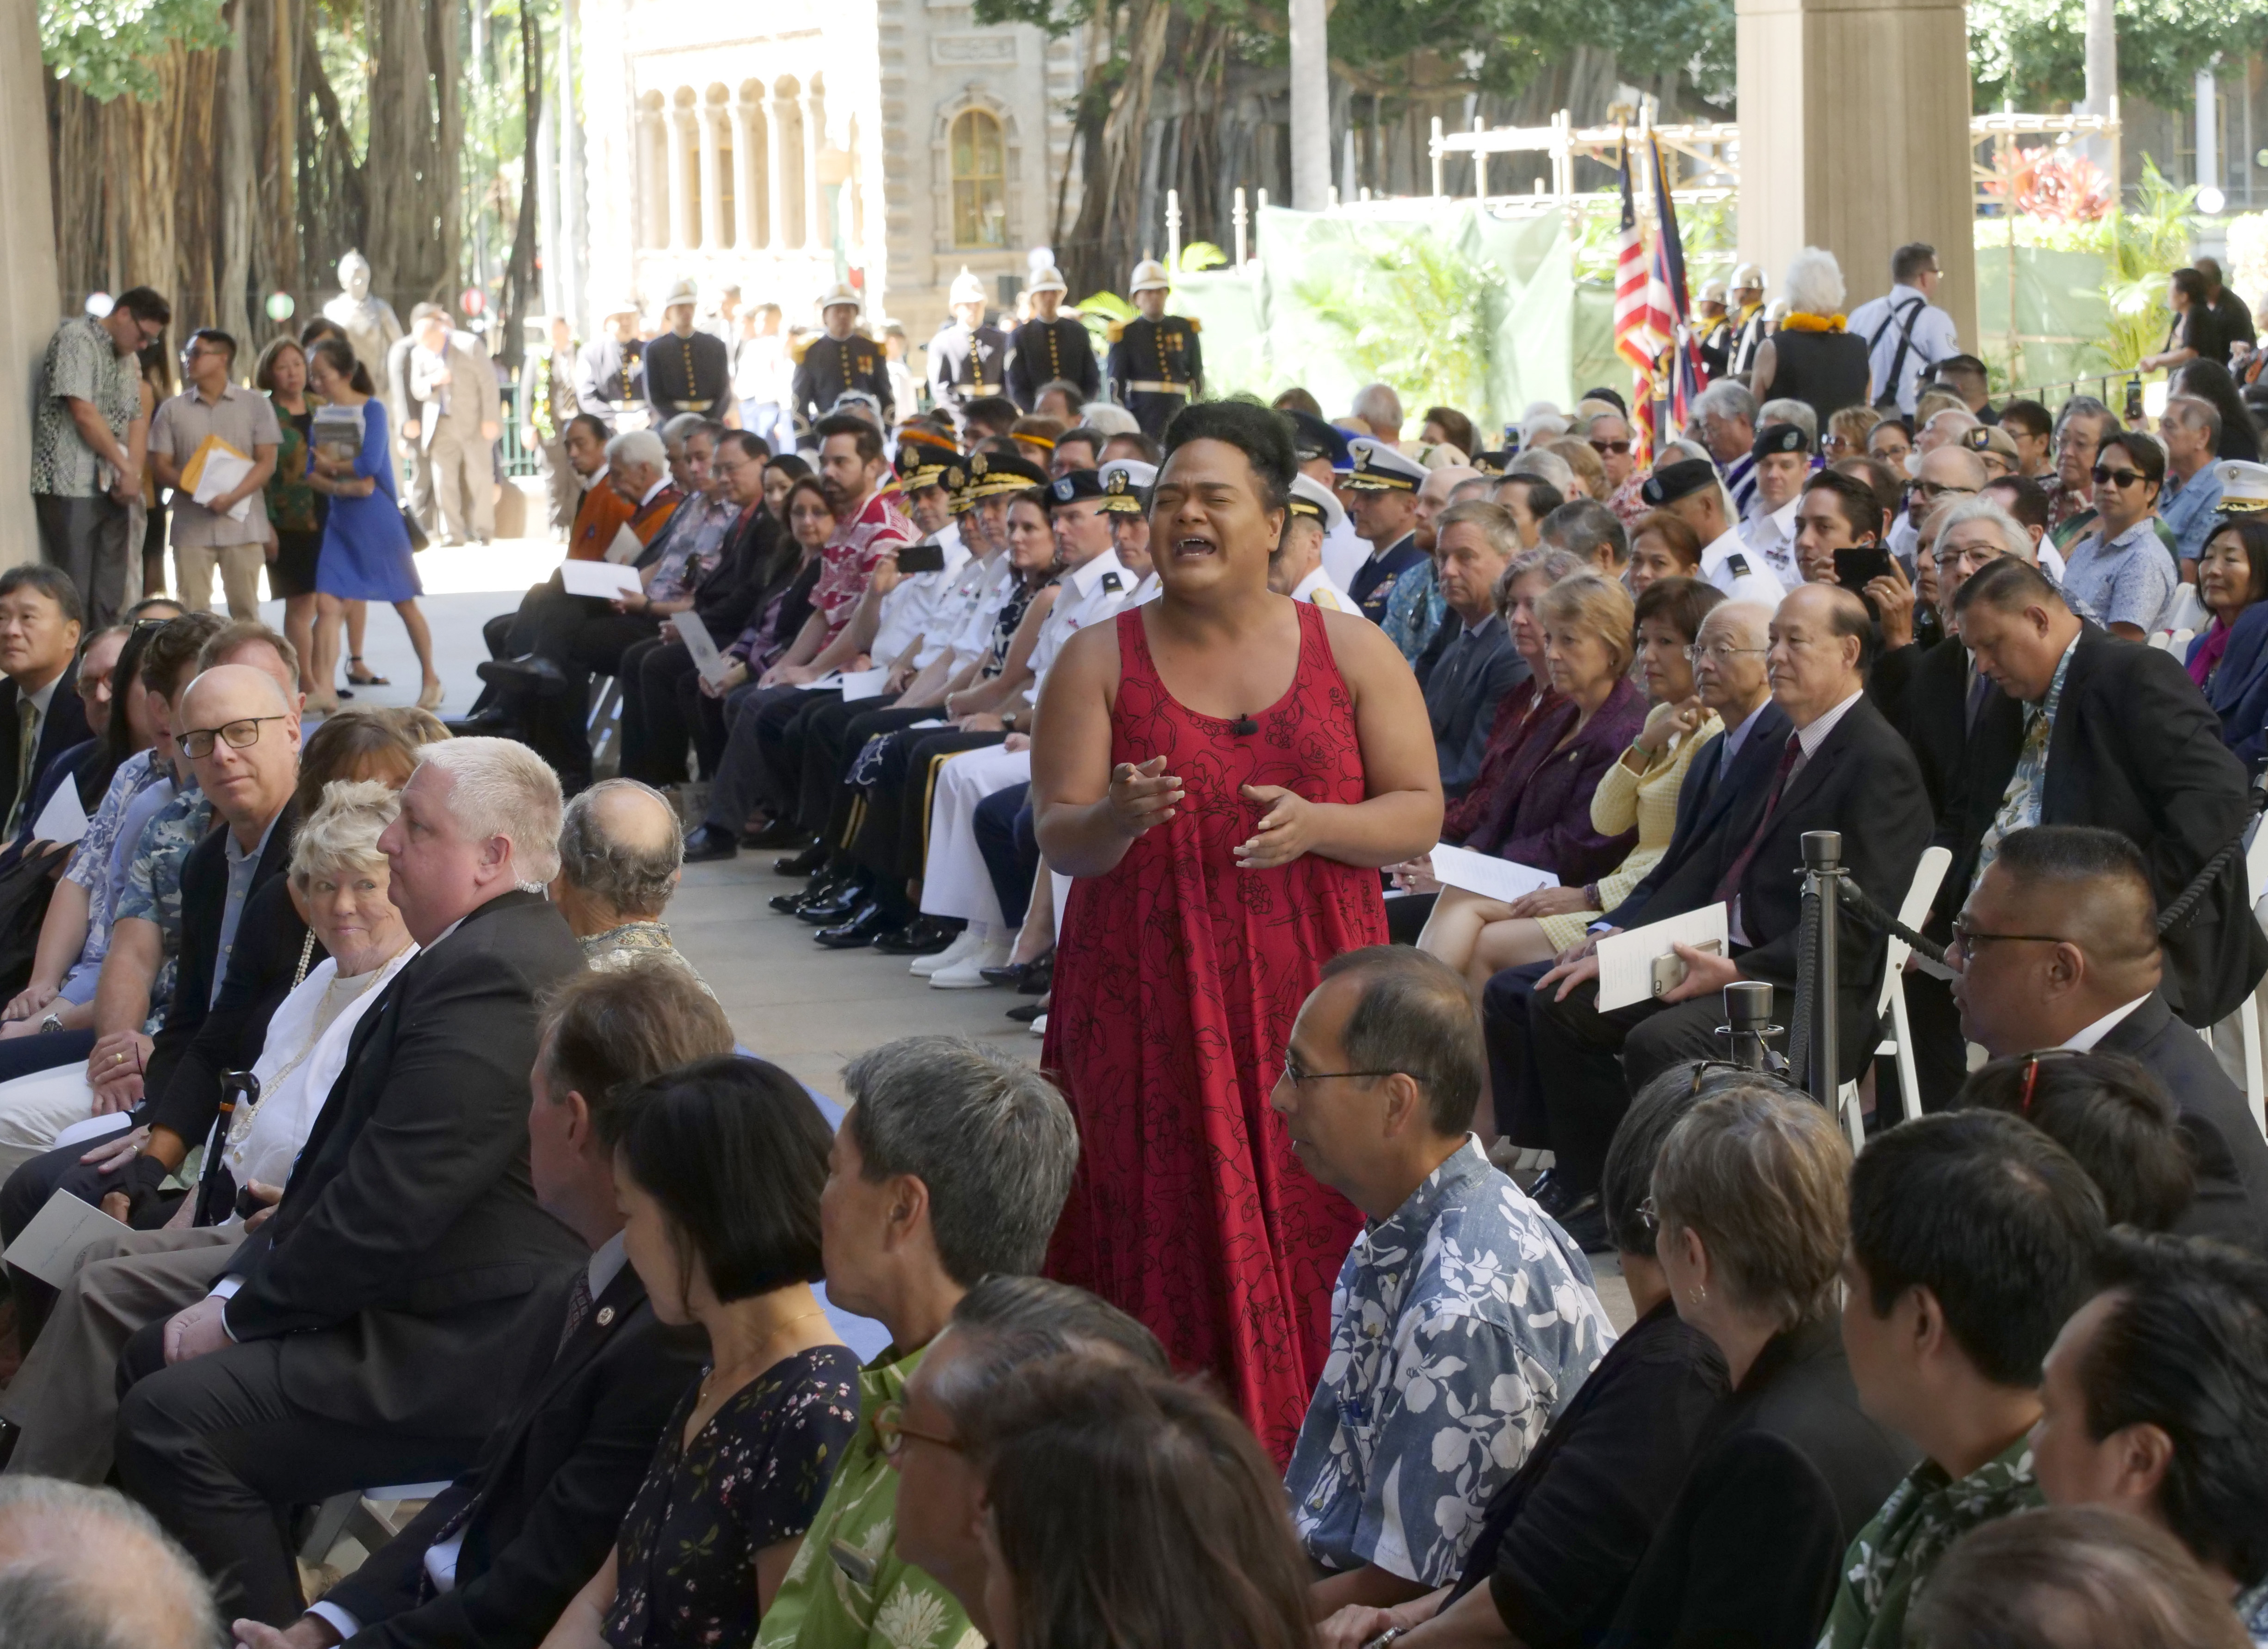 <p><strong>INAUGURAL CHANT:</strong> Oli Kaumakaiwa Kanaka&#8217;ole performs during inauguration ceremonies for Gov. David Ige and Lt. Gov. Josh Green at the Capitol on Dec. 3. / Ronen Zilberman</p>